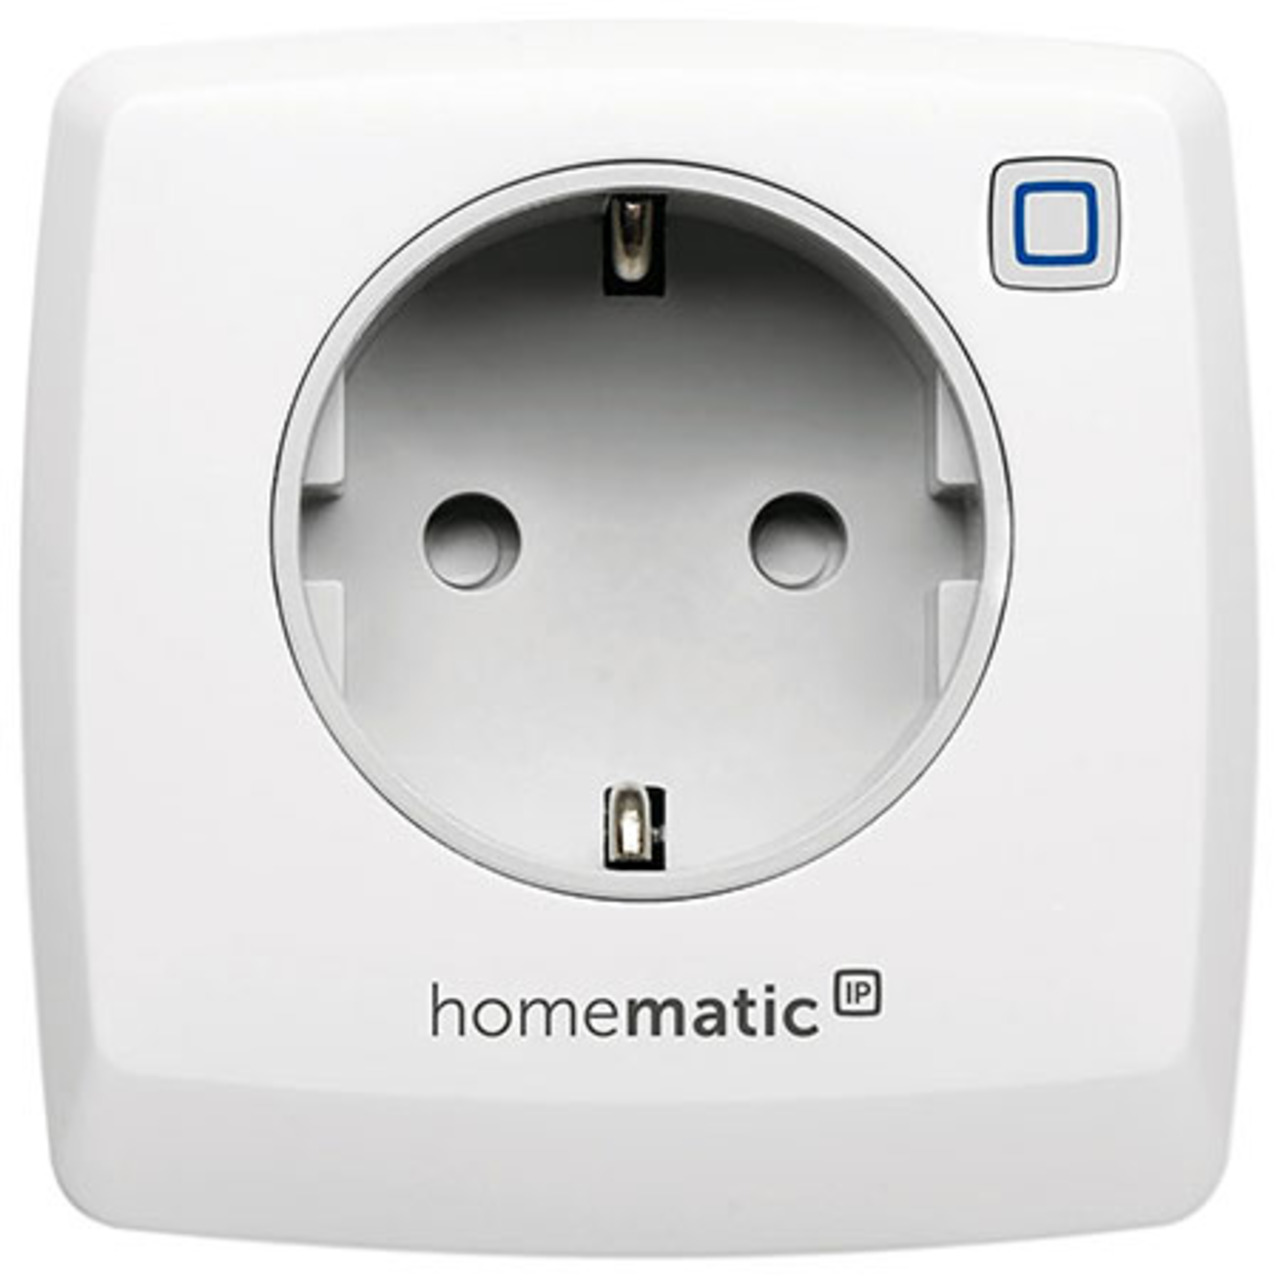 Homematic IP Schalt-Mess-Steckdose HMIP-PSM für Smart Home - Hausautomation